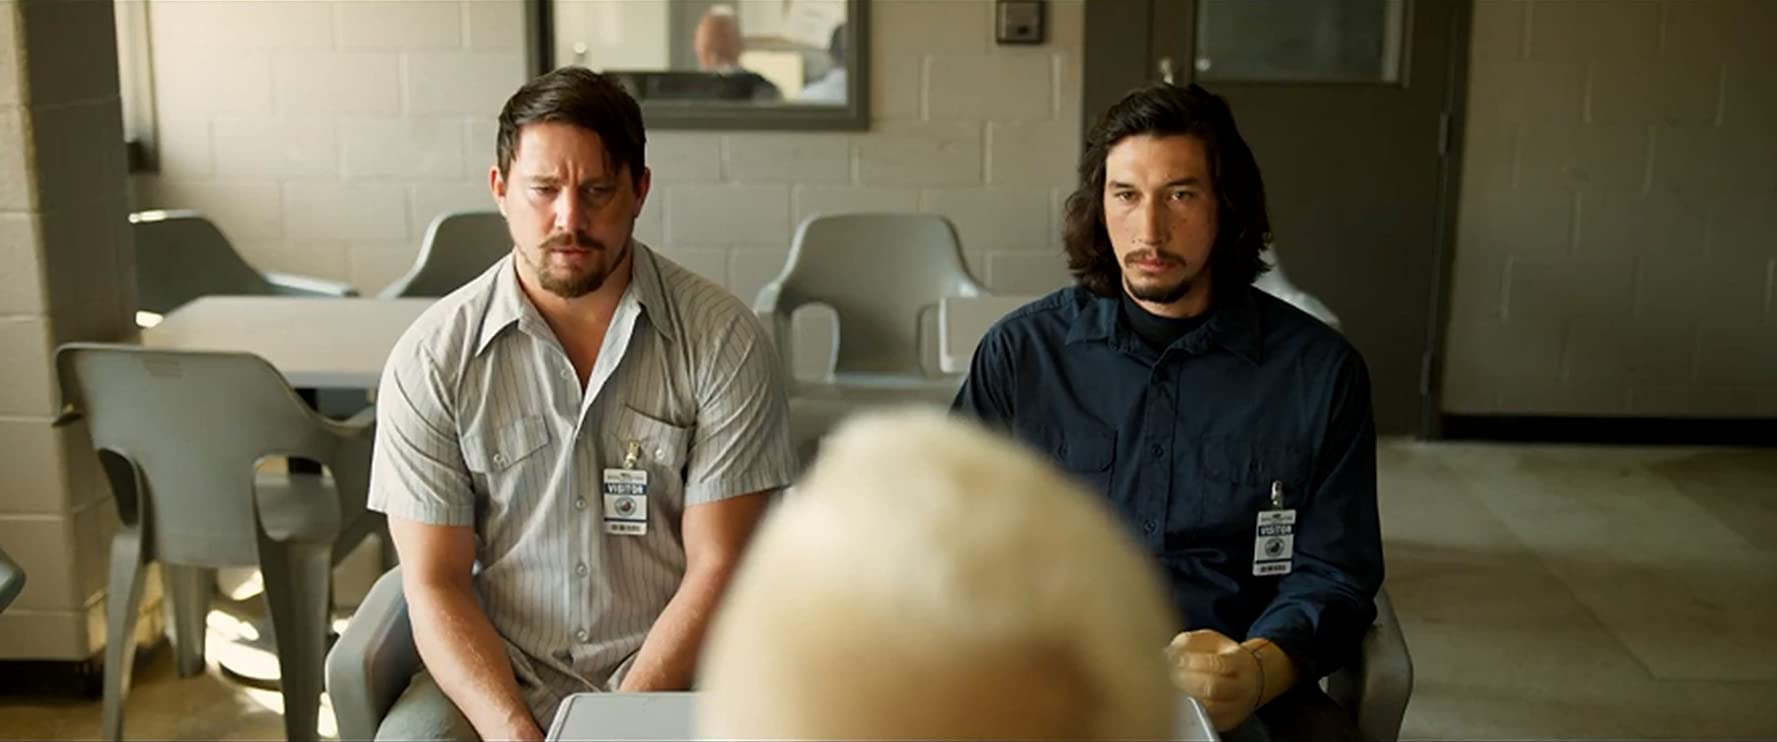 Daniel Craig, Channing Tatum, and Adam Driver in Logan Lucky (2017)